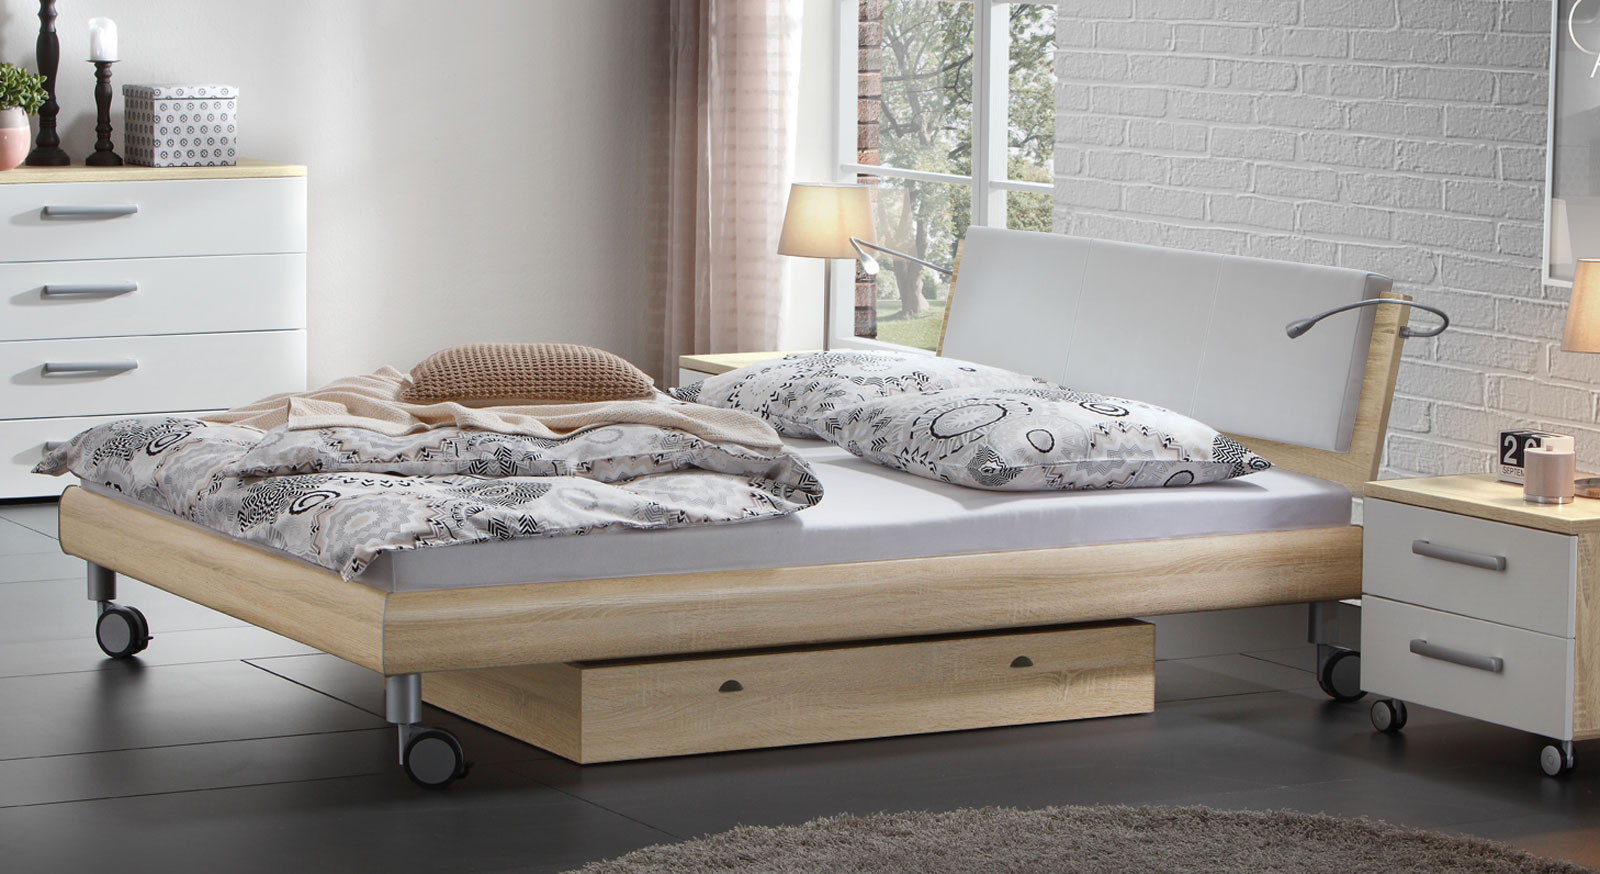 doppelbett in holzdekor mit rollen antia. Black Bedroom Furniture Sets. Home Design Ideas